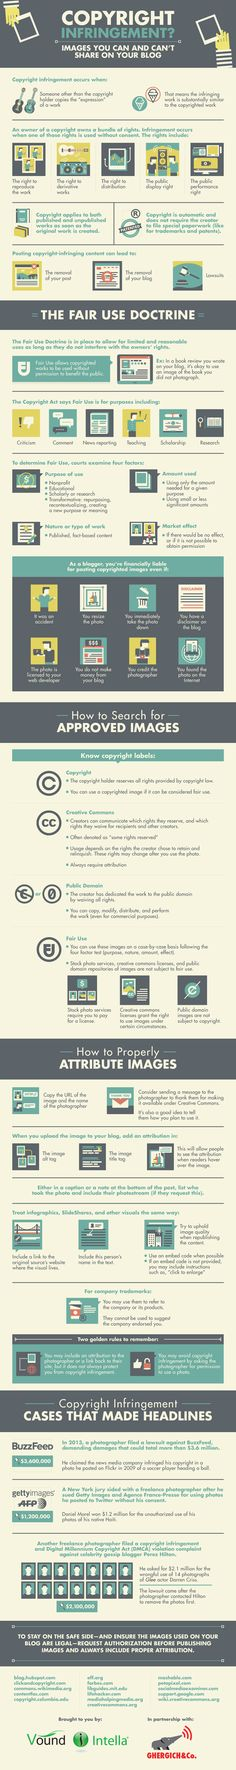 A Simple Guide to Copyright Infringement: The Images You Can & Can't Share On Your Blog [Infographic], via @HubSpot